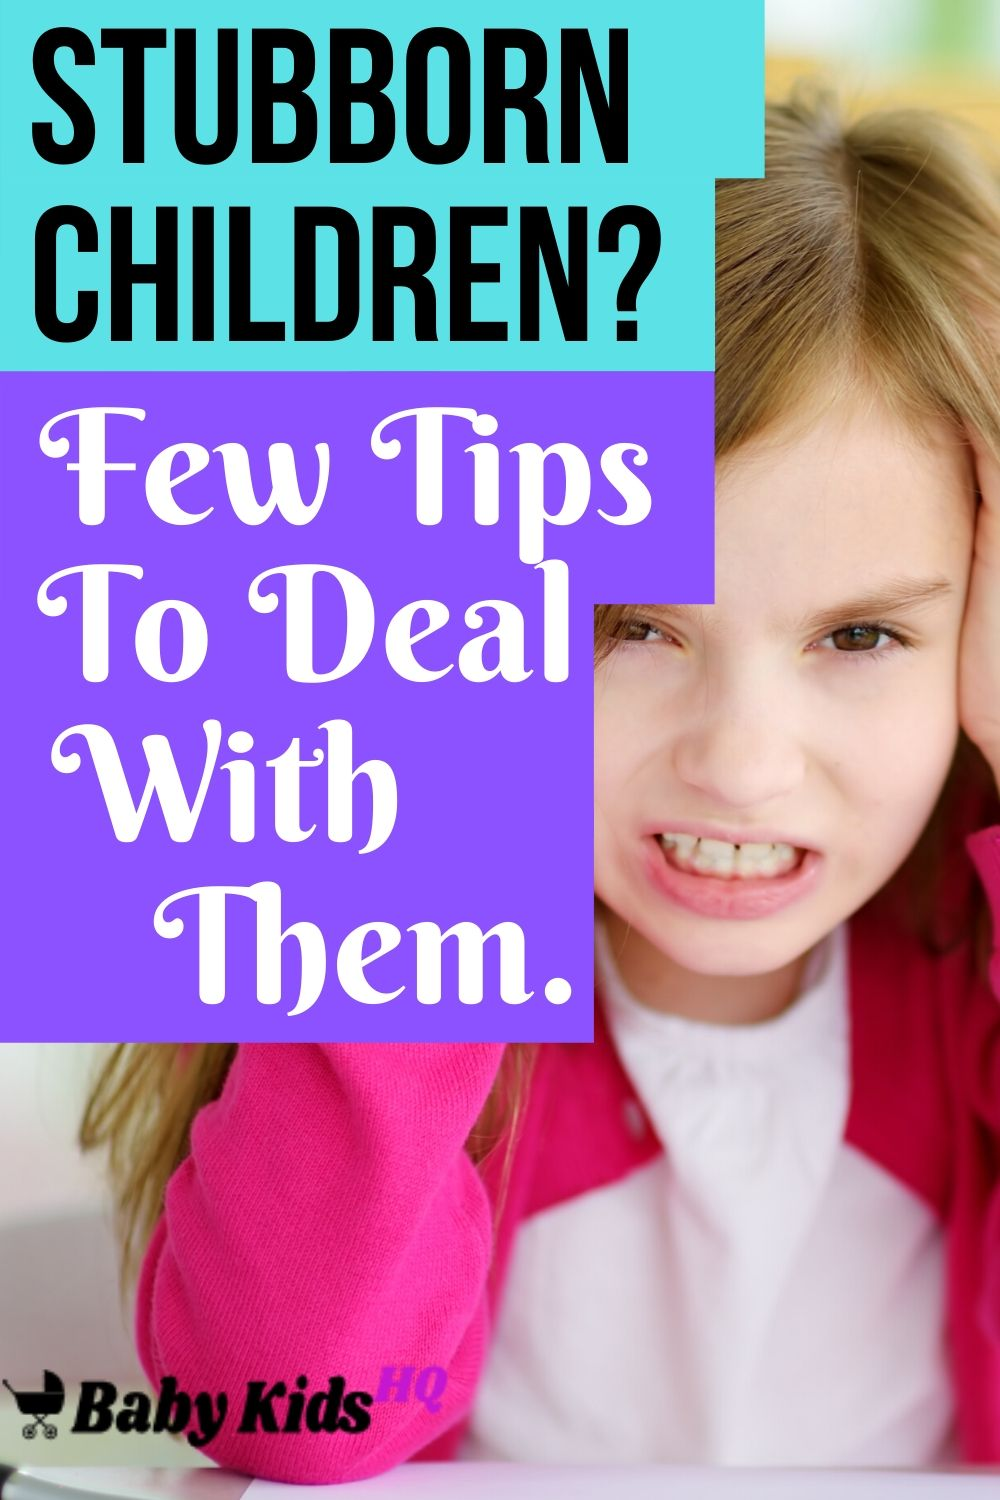 Stubborn Children Few Tips To Deal With Them.